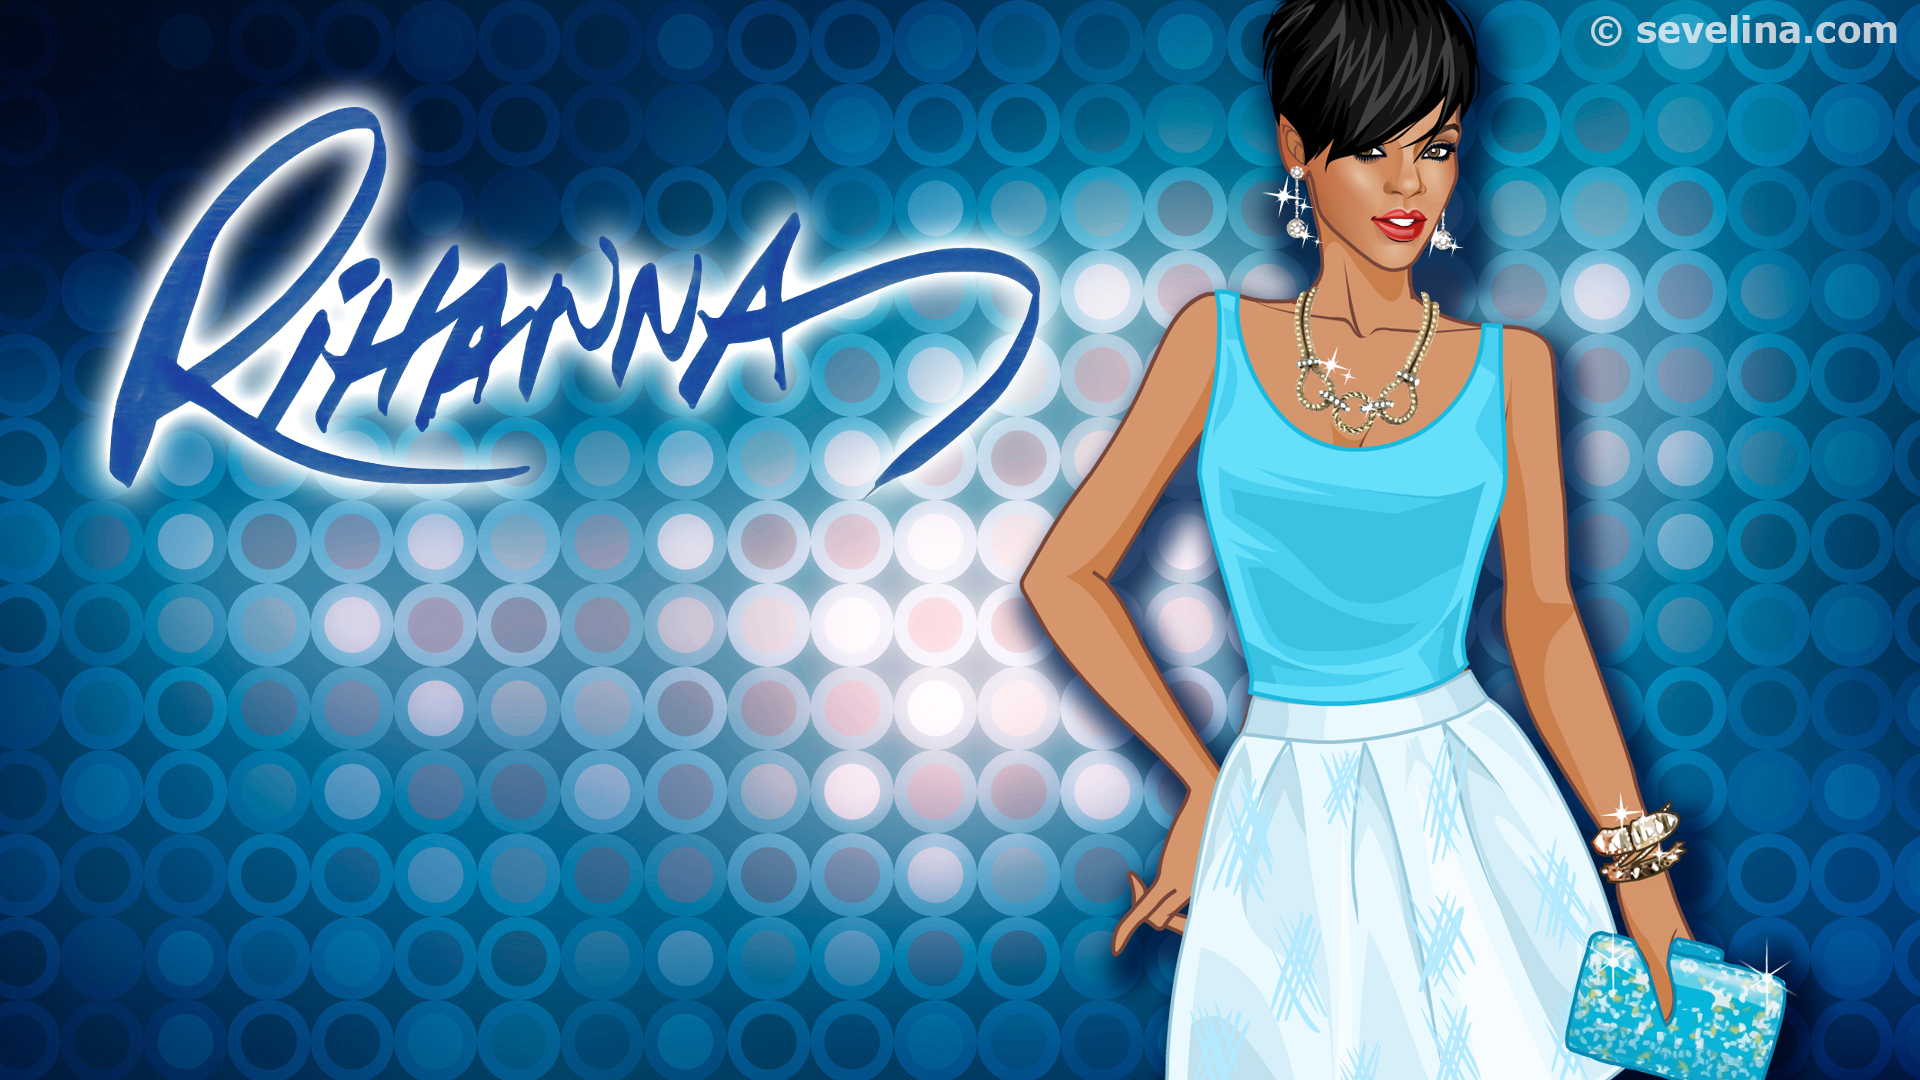 rihanna-wallpapers-2014-sevelina-dress-up-games-8